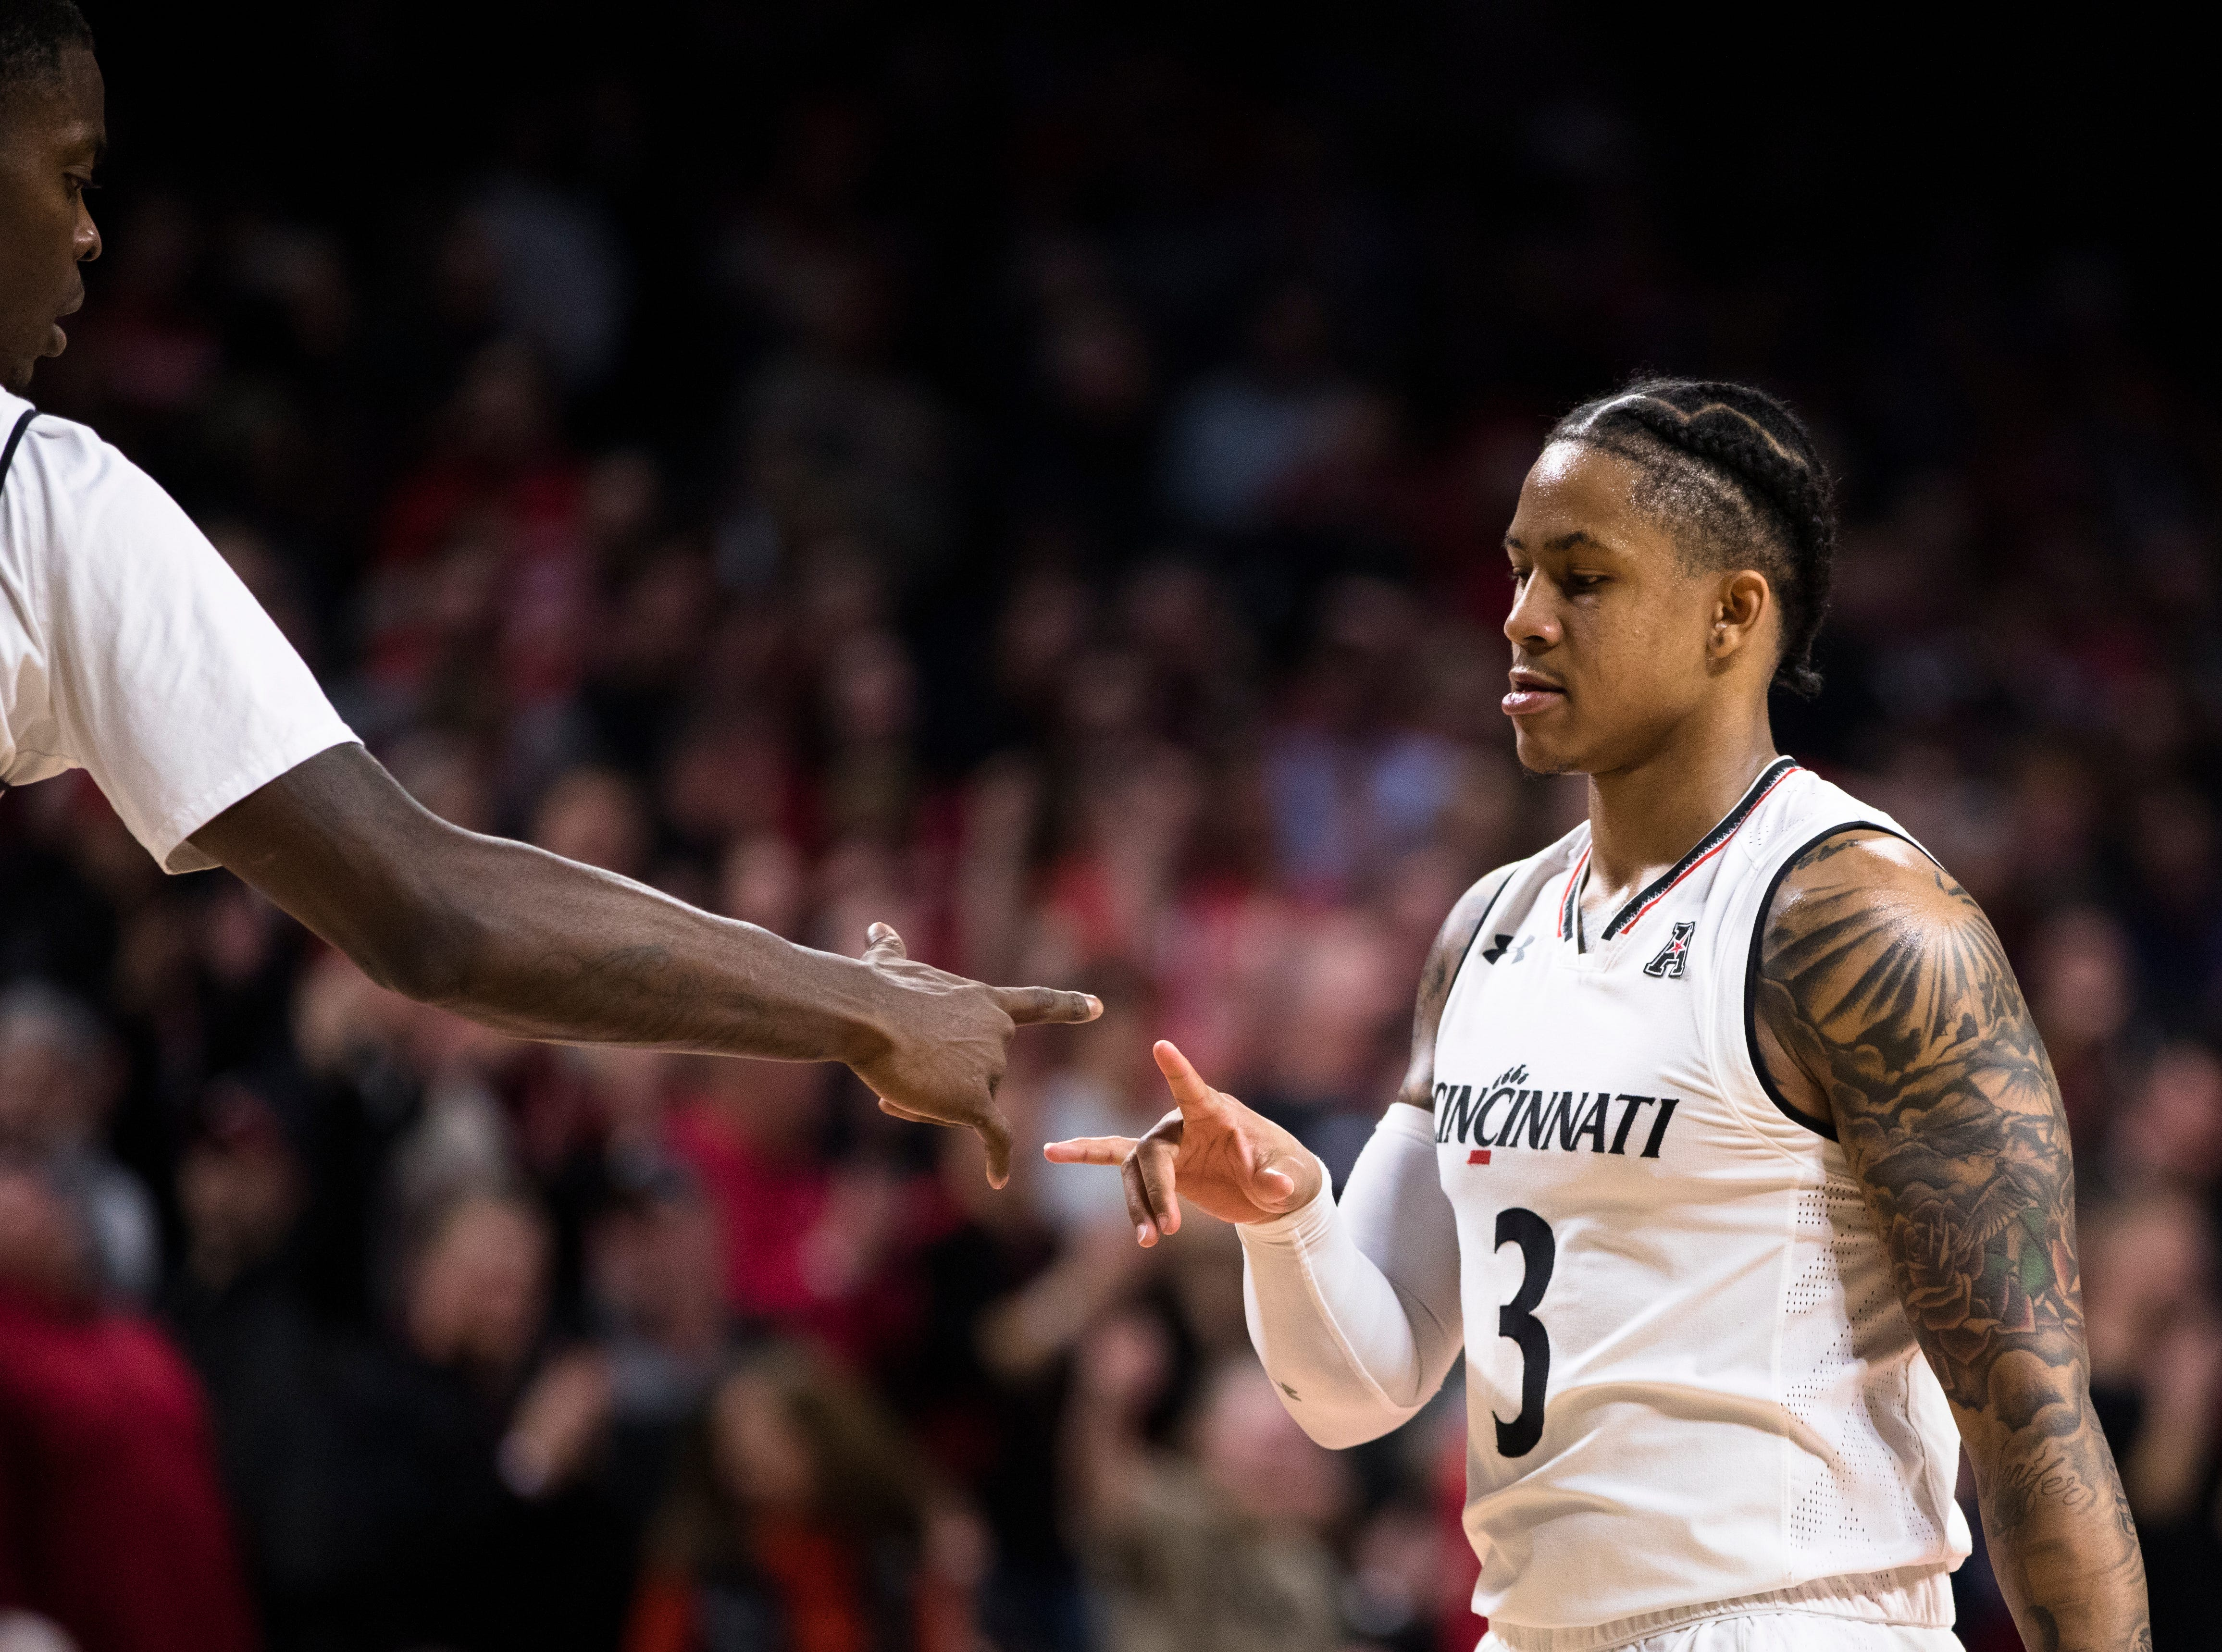 Cincinnati Bearcats guard Justin Jenifer (3) celebrates after hitting a free throw in the second half of the NCAA men's basketball game between Cincinnati Bearcats and UCF Knights on Thursday, Feb. 21, 2019, at Fifth Third Arena in Cincinnati.